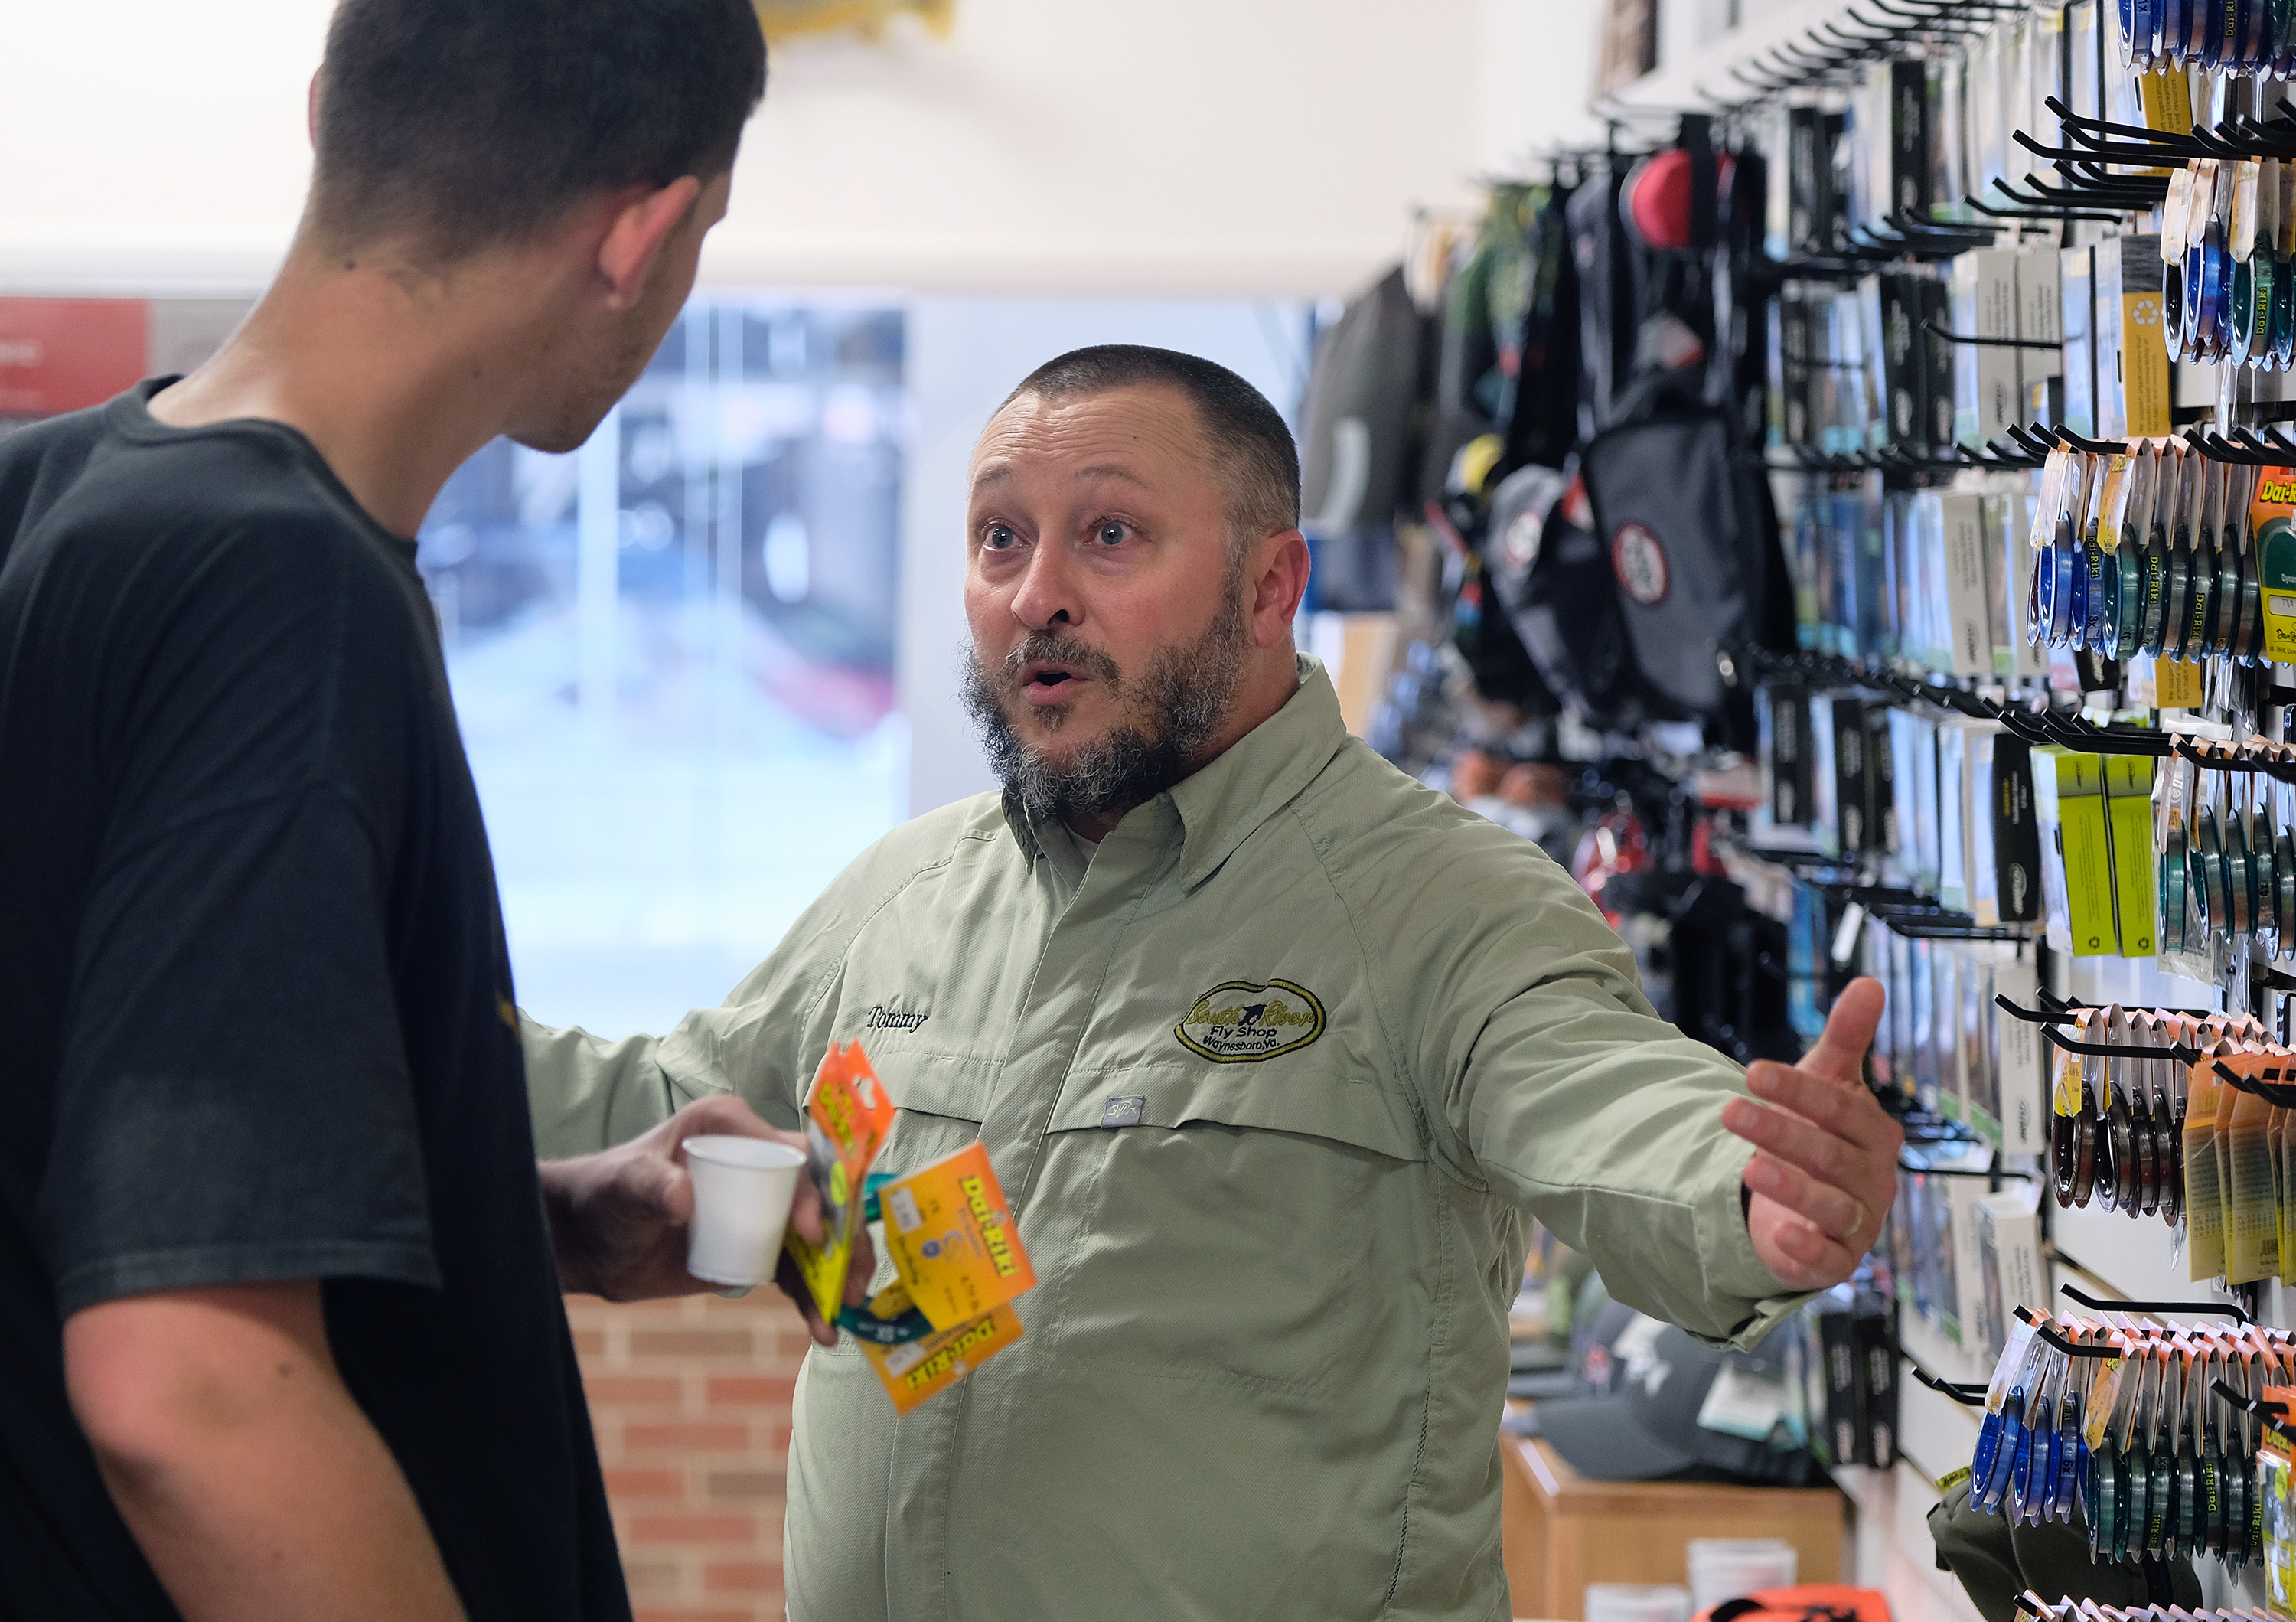 Tommy Lawhorne, right, talks with customer Chase Halterman of Goshen, Va. at the South River Fly shop in Waynesboro, Va., Thursday, Oct. 13, 2016. (Photo by Norm Shafer).